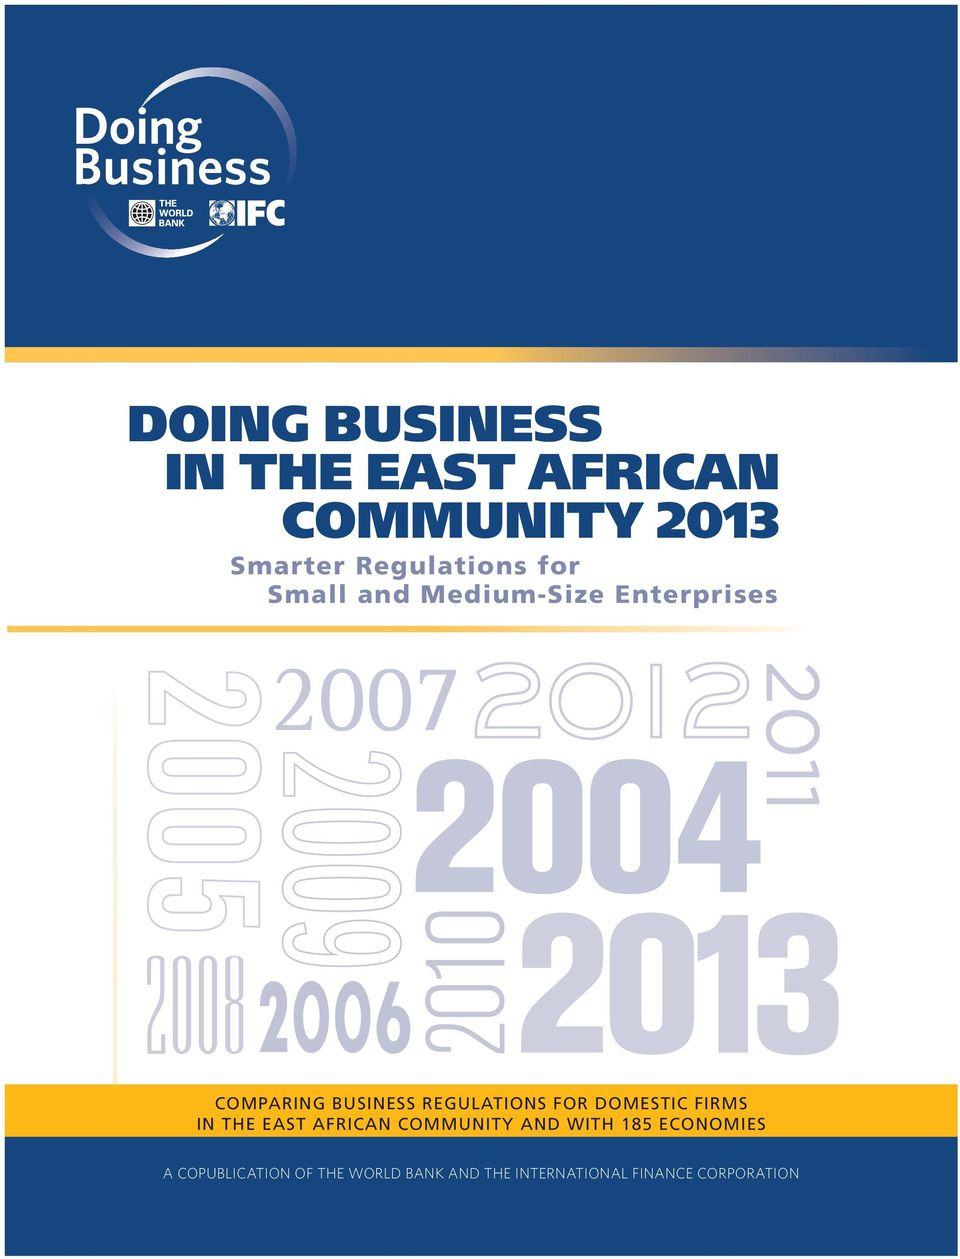 FOR DOMESTIC FIRMS IN THE EAST AFRICAN COMMUNITY AND WITH 185 ECONOMIES